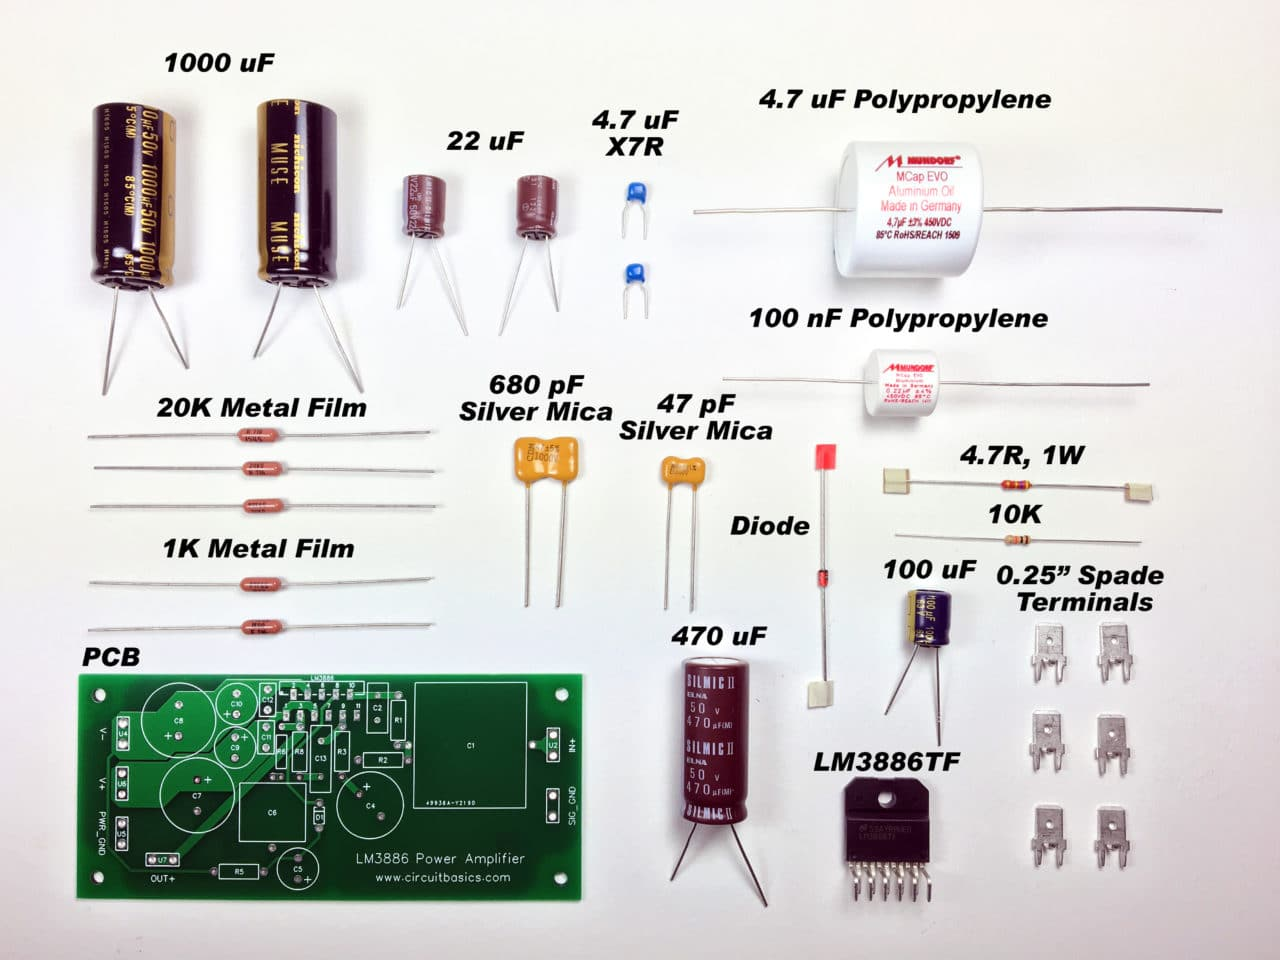 A Complete Guide To Design And Build Hi Fi Lm3886 Amplifier How Simple Circuit Breaker Unit Electronic The Total Cost Came About 118 For Both Channels Not Including Chassis Power Supply Wiring Parts You Can It Lot Less With Cheaper